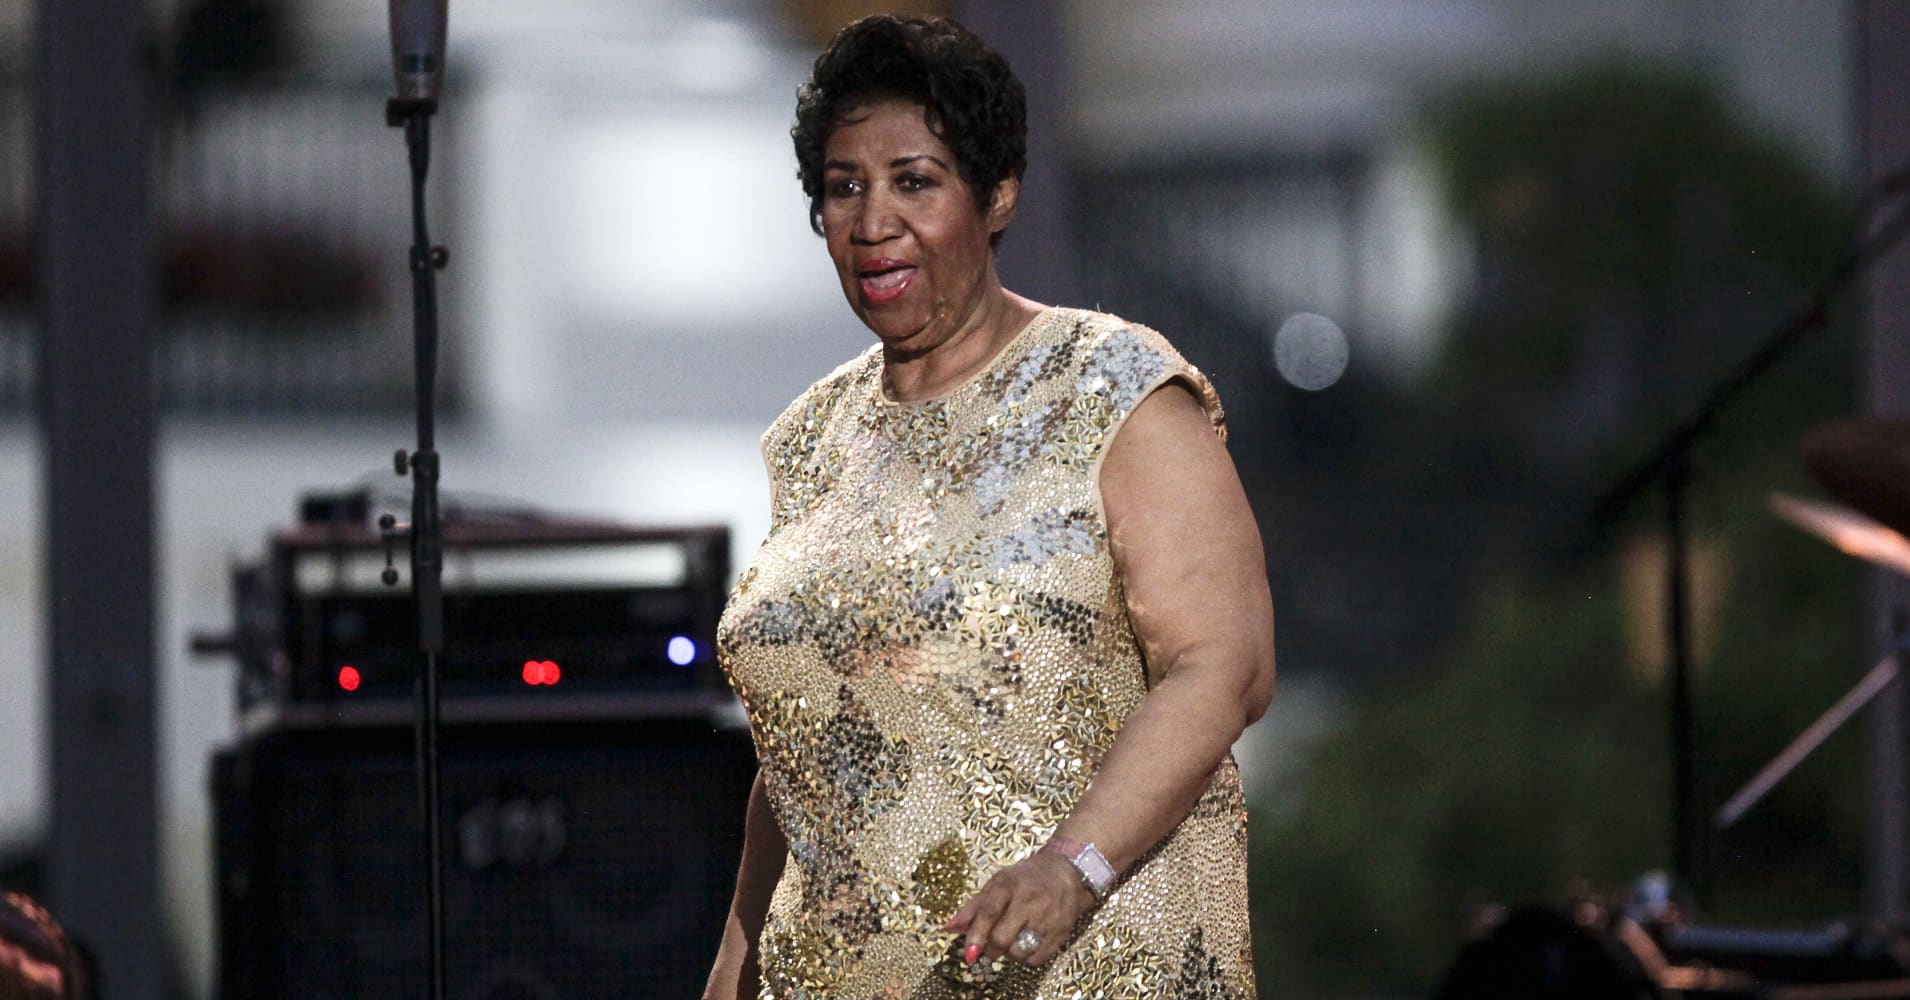 WASHINGTON, DC - APRIL 29: Aretha Franklin performs at the International Jazz Day Concert on the South Lawn of the White House on April 29, 2016 in Washington, DC. The event was presented by actor Morgan Freeman and included remarks by President Obama. (Photo by Aude Guerrucci-Pool/Getty Images)